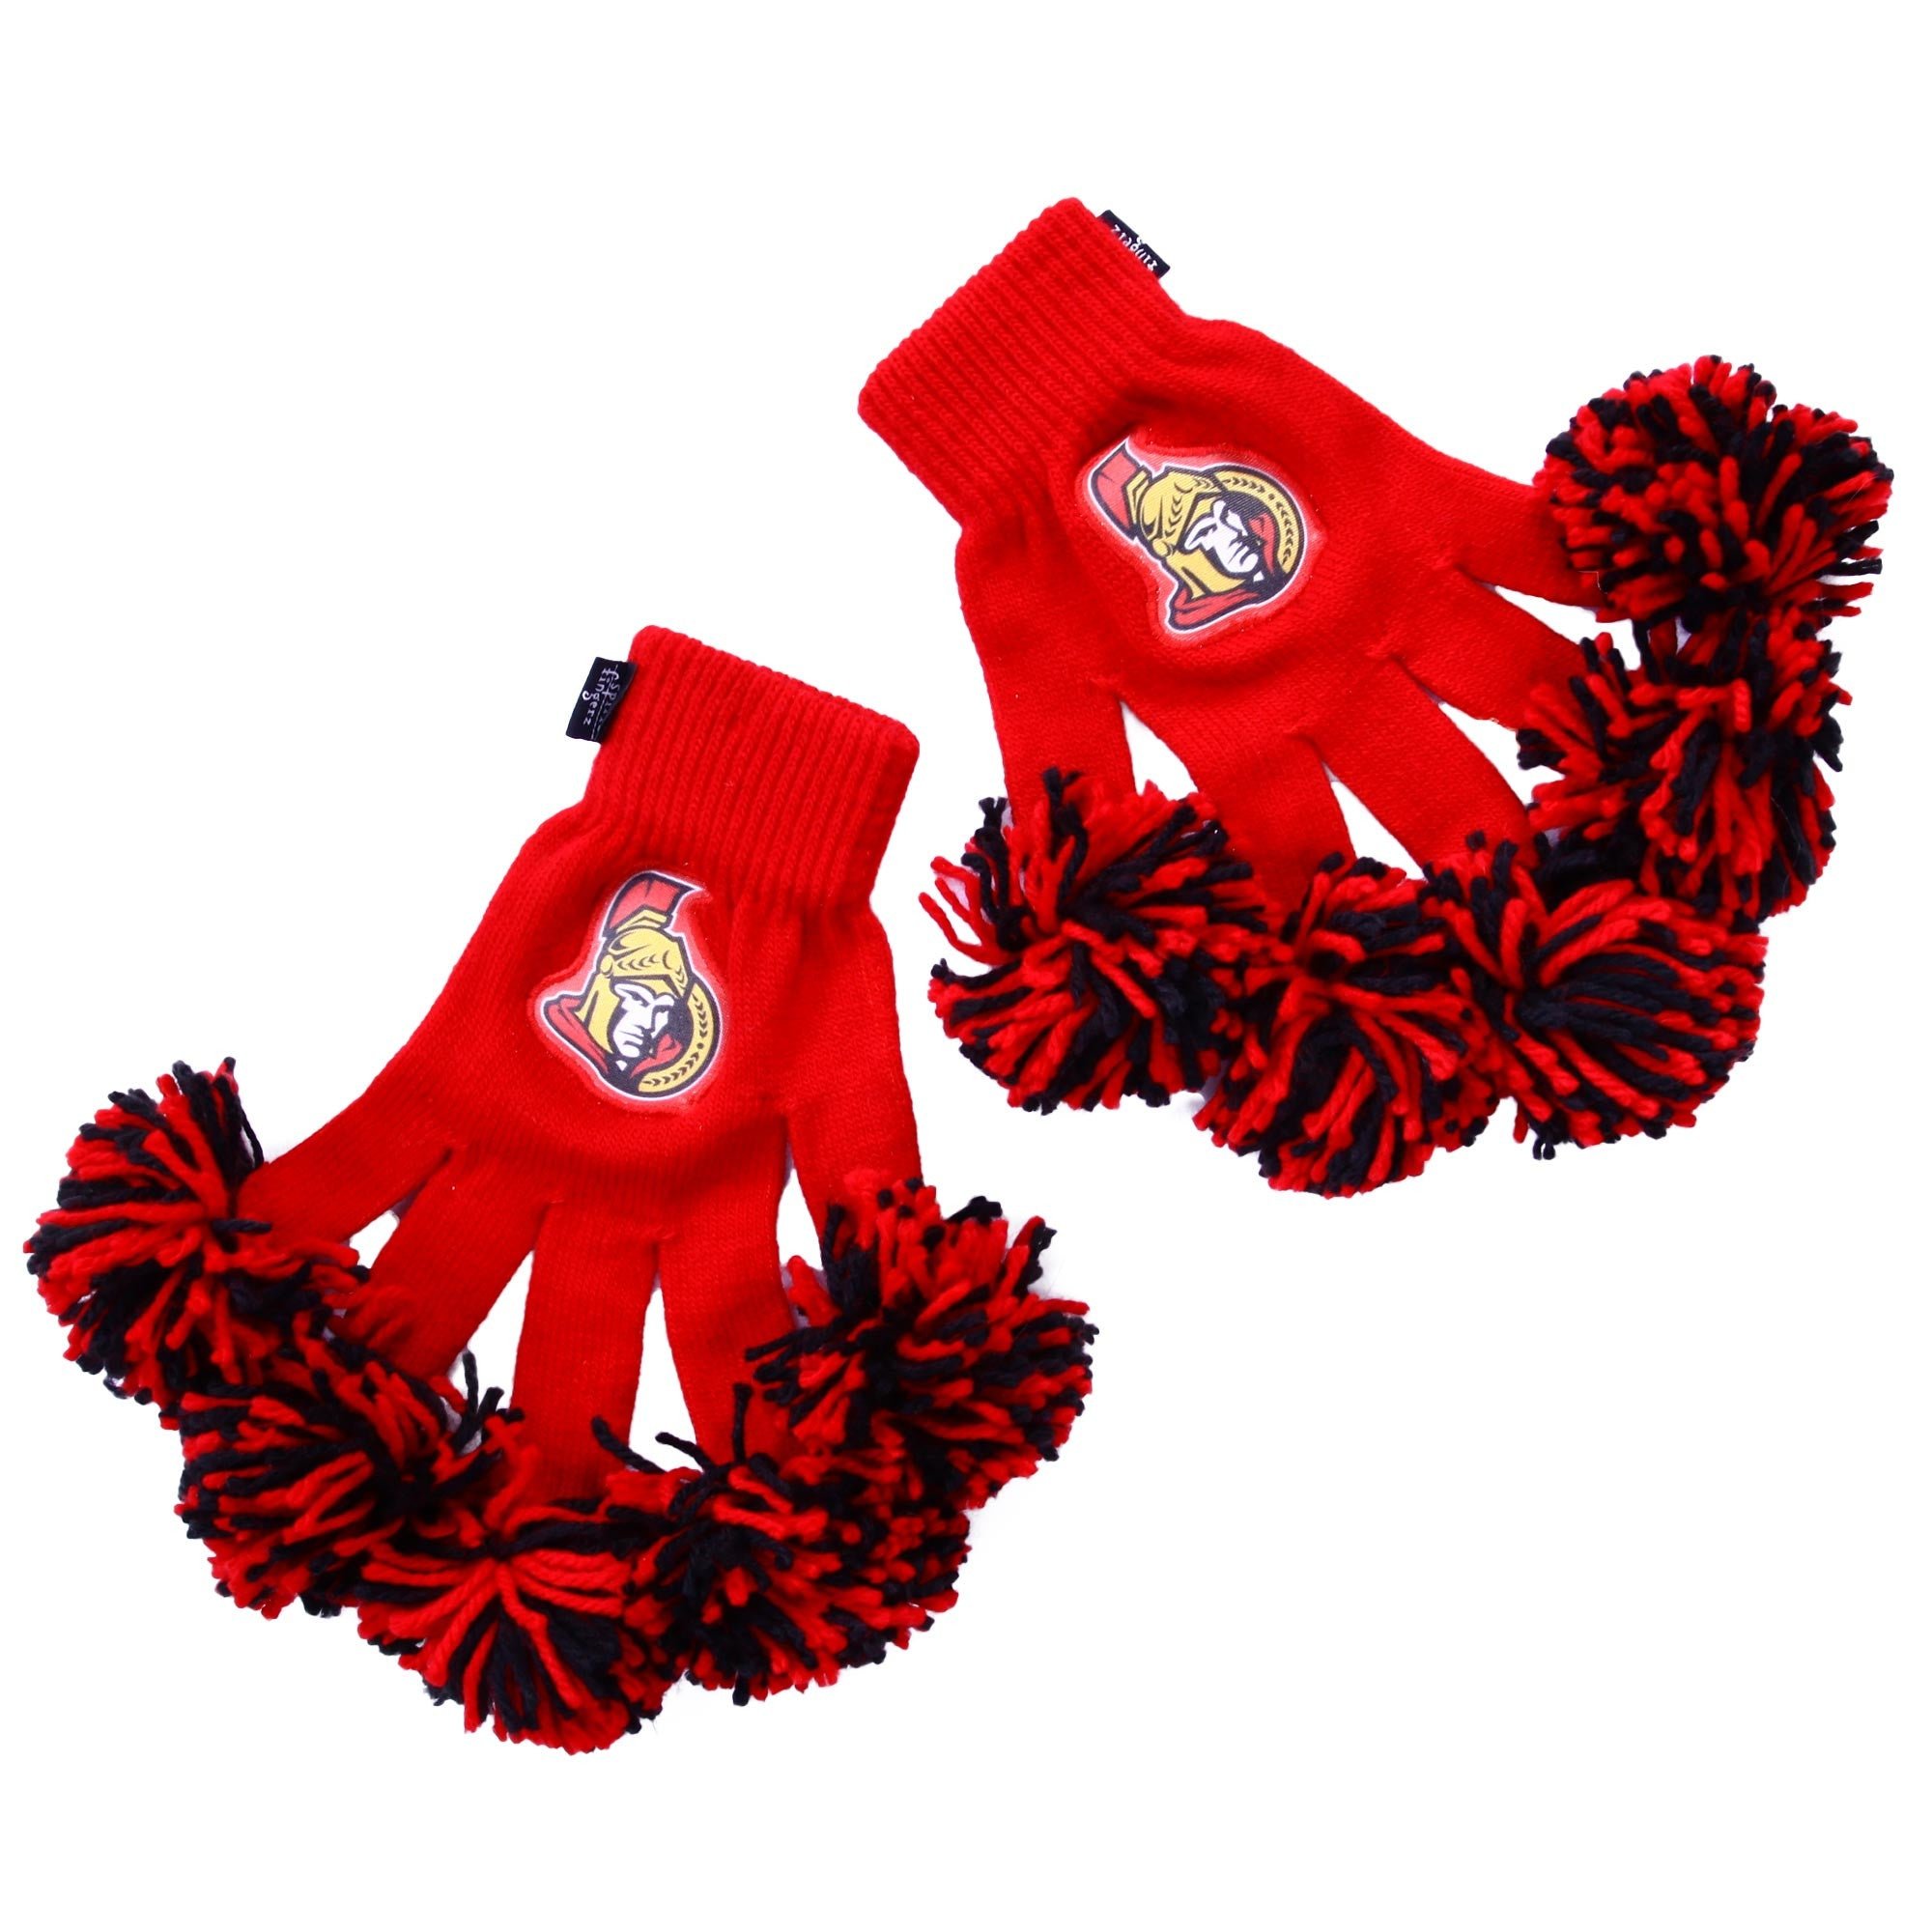 Ottawa Senators NHL Spirit Fingerz Cheerleading Pom-Pom Gloves